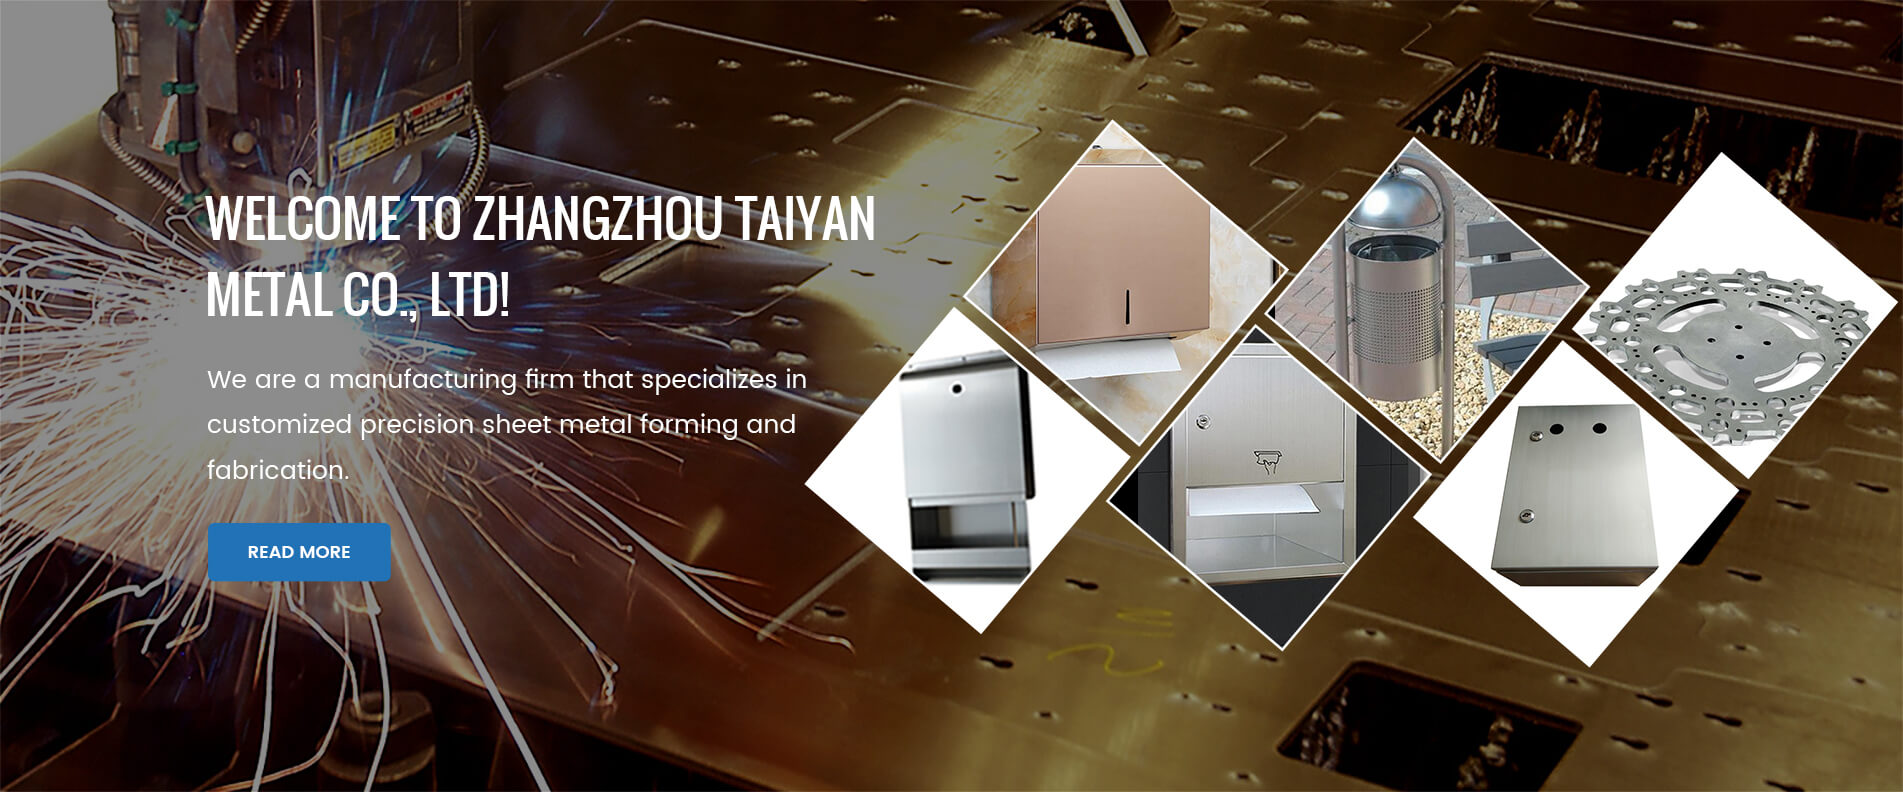 Zhangzhou Taiyan Metal Co. Ltd